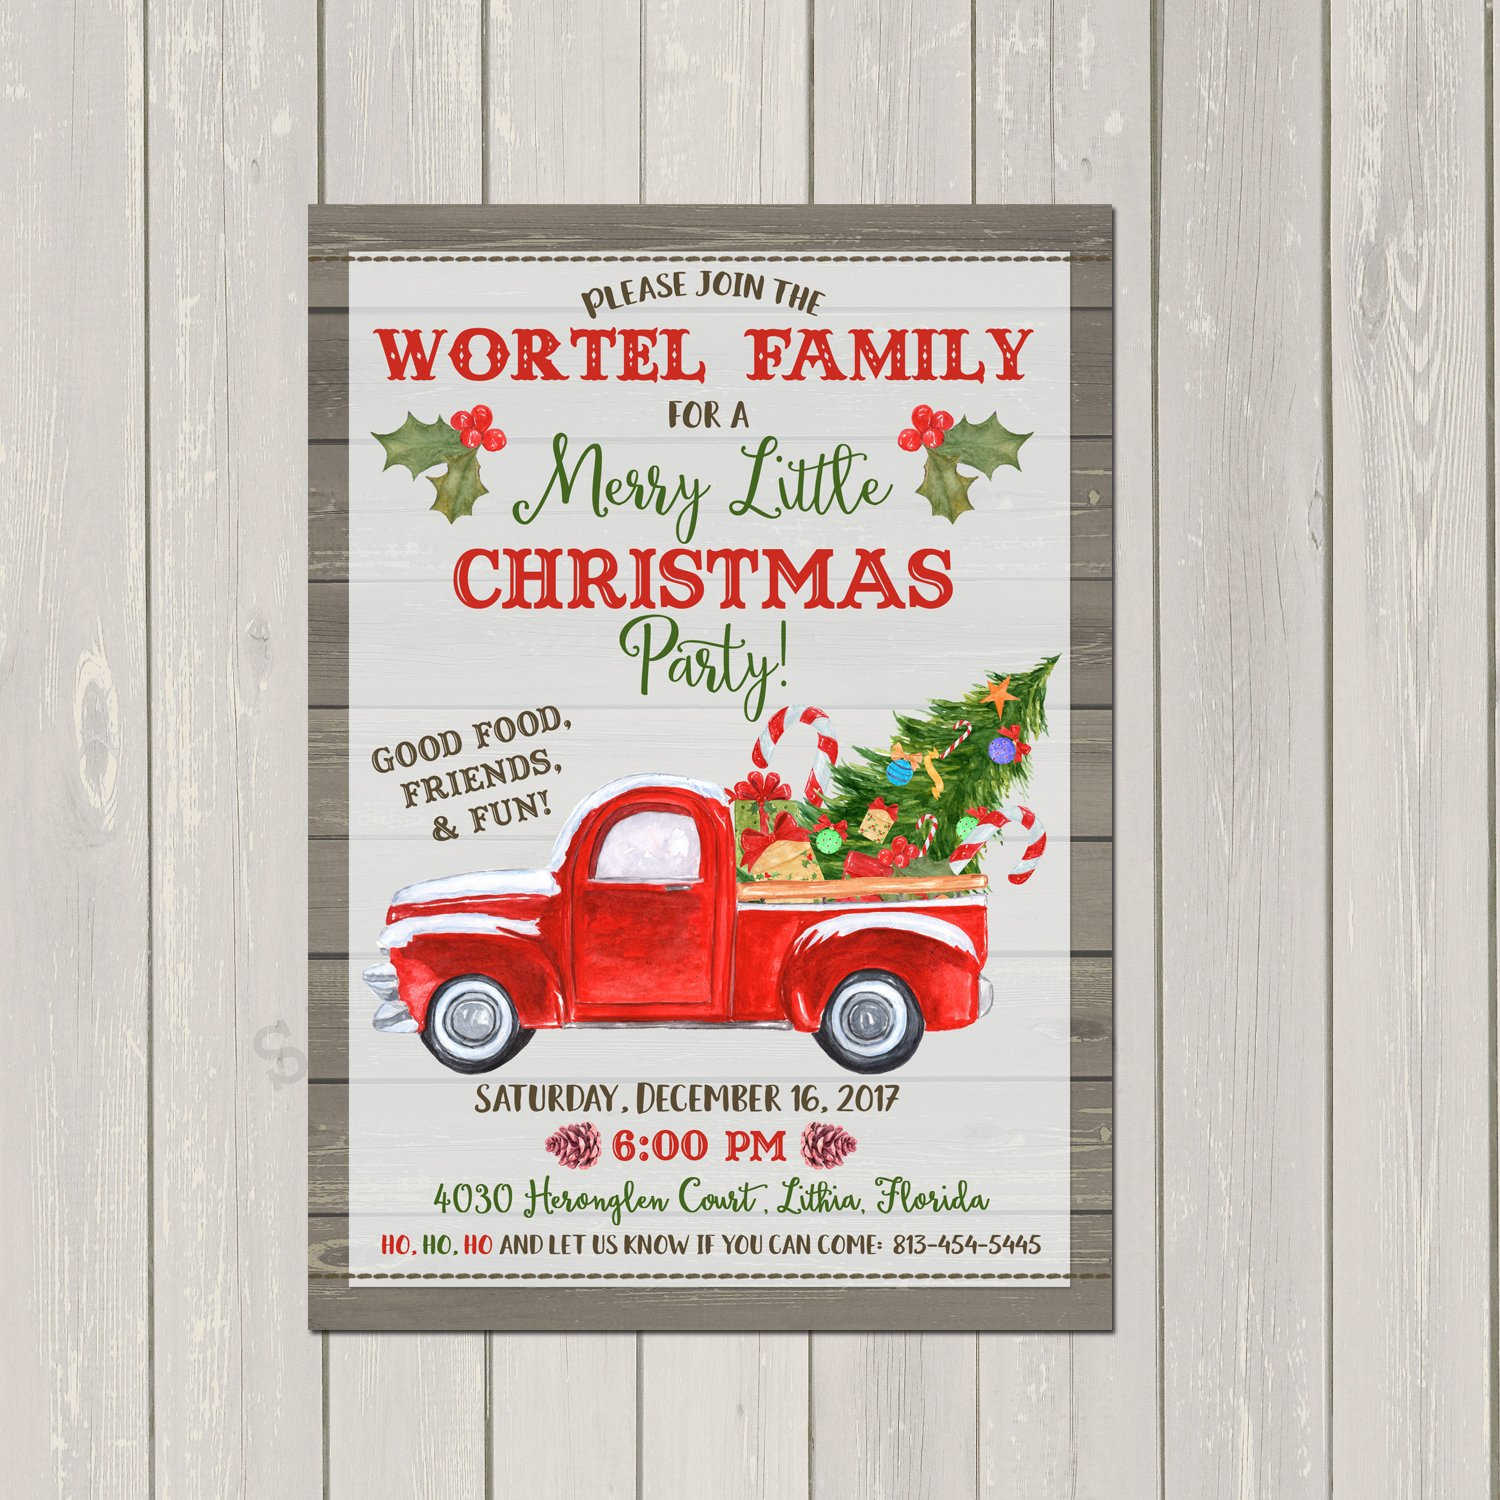 Rustic Red Truck Christmas Party Invitations, Red Truck Holiday Party Invitations, Base price is for Set of 10 5x7 card invitations with white envelopes